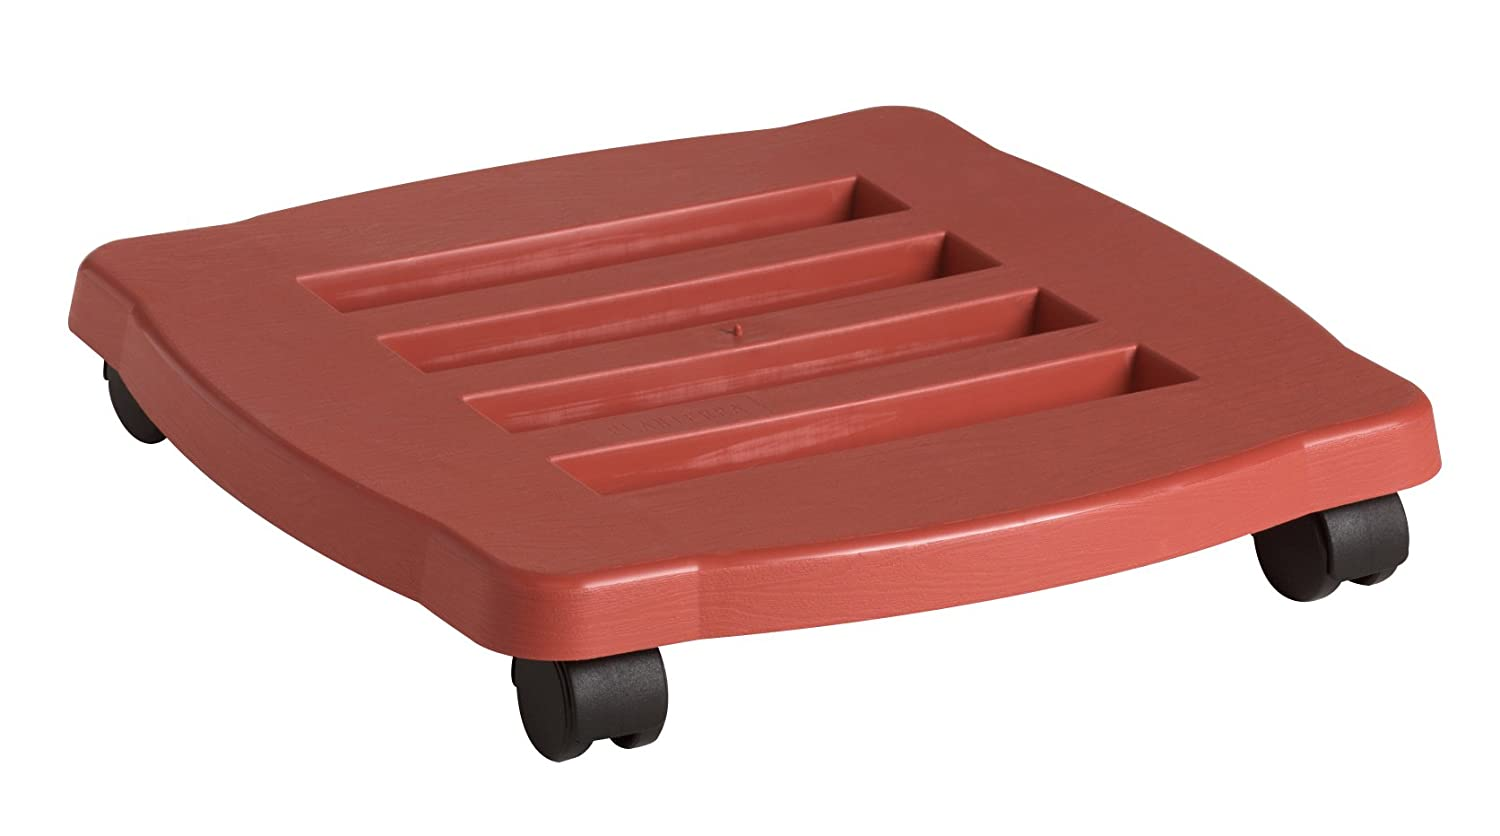 Fiskars 95125C 15-Inch Square Planter Caddy, terracotta color